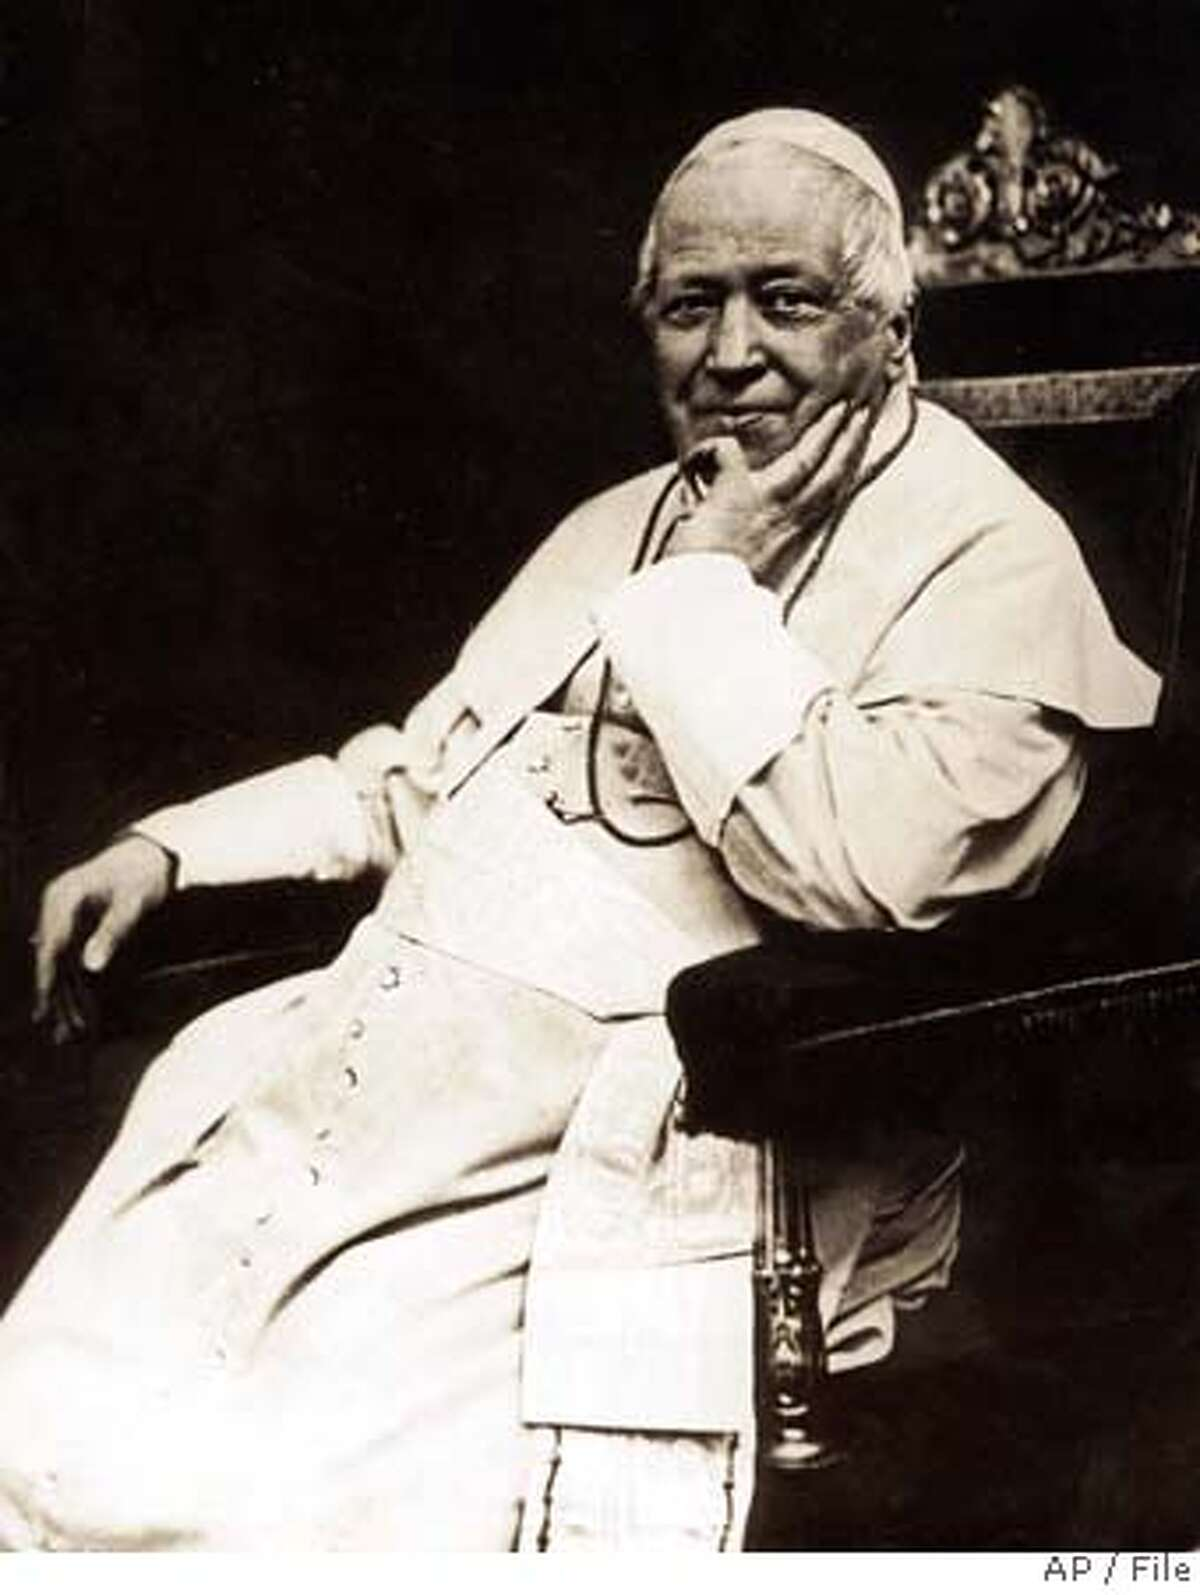 FILE - An undated photo of Pope Pius IX. Pope Giovanni Mastai Ferretti, who reigned from 1846 to 1878 in an history longest papacy will be beatified in a twin ceremony at the Vatican September 3, 2000, with 1958-63 Pope John XXIII. (AP Photo) UNDATED B/W FILER